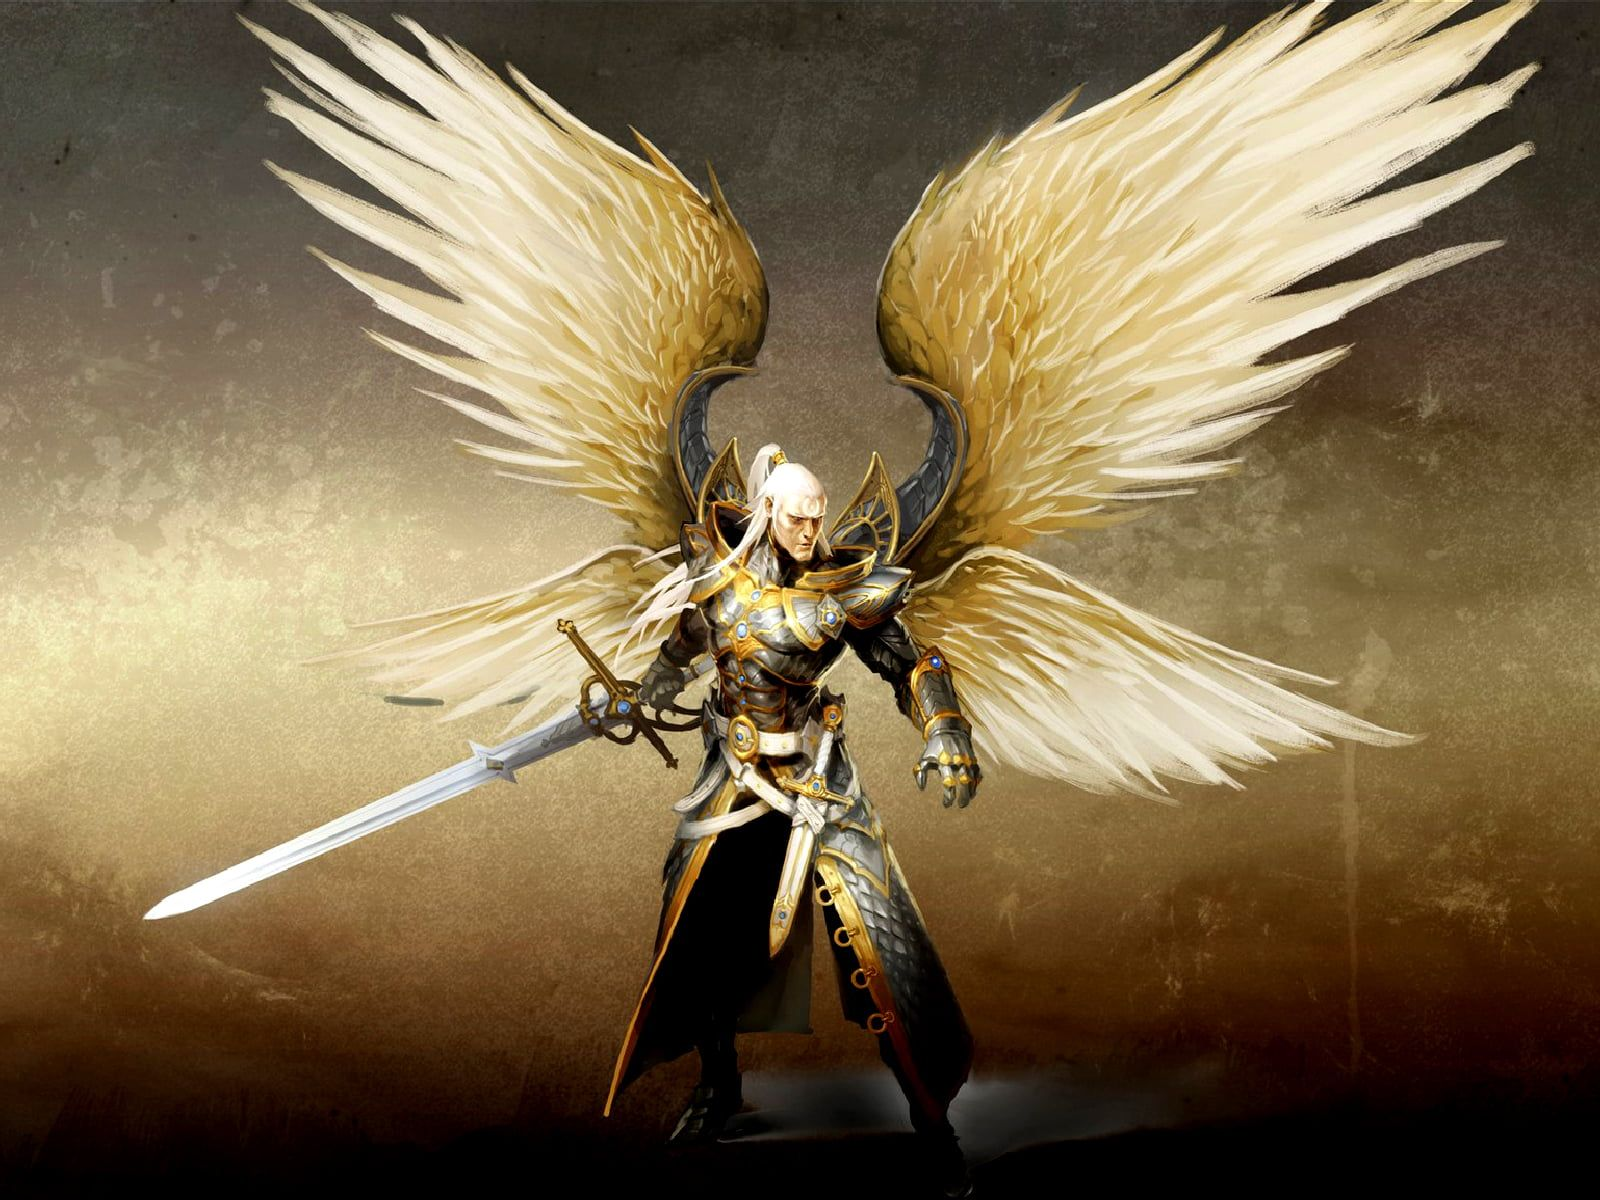 Man With Wings Holding Sword Wallpaper Angel Might And Magic Video Games Fantasy Art Artwork Sword Wings 720p W Angel Warrior Fantasy Warrior Fantasy Art